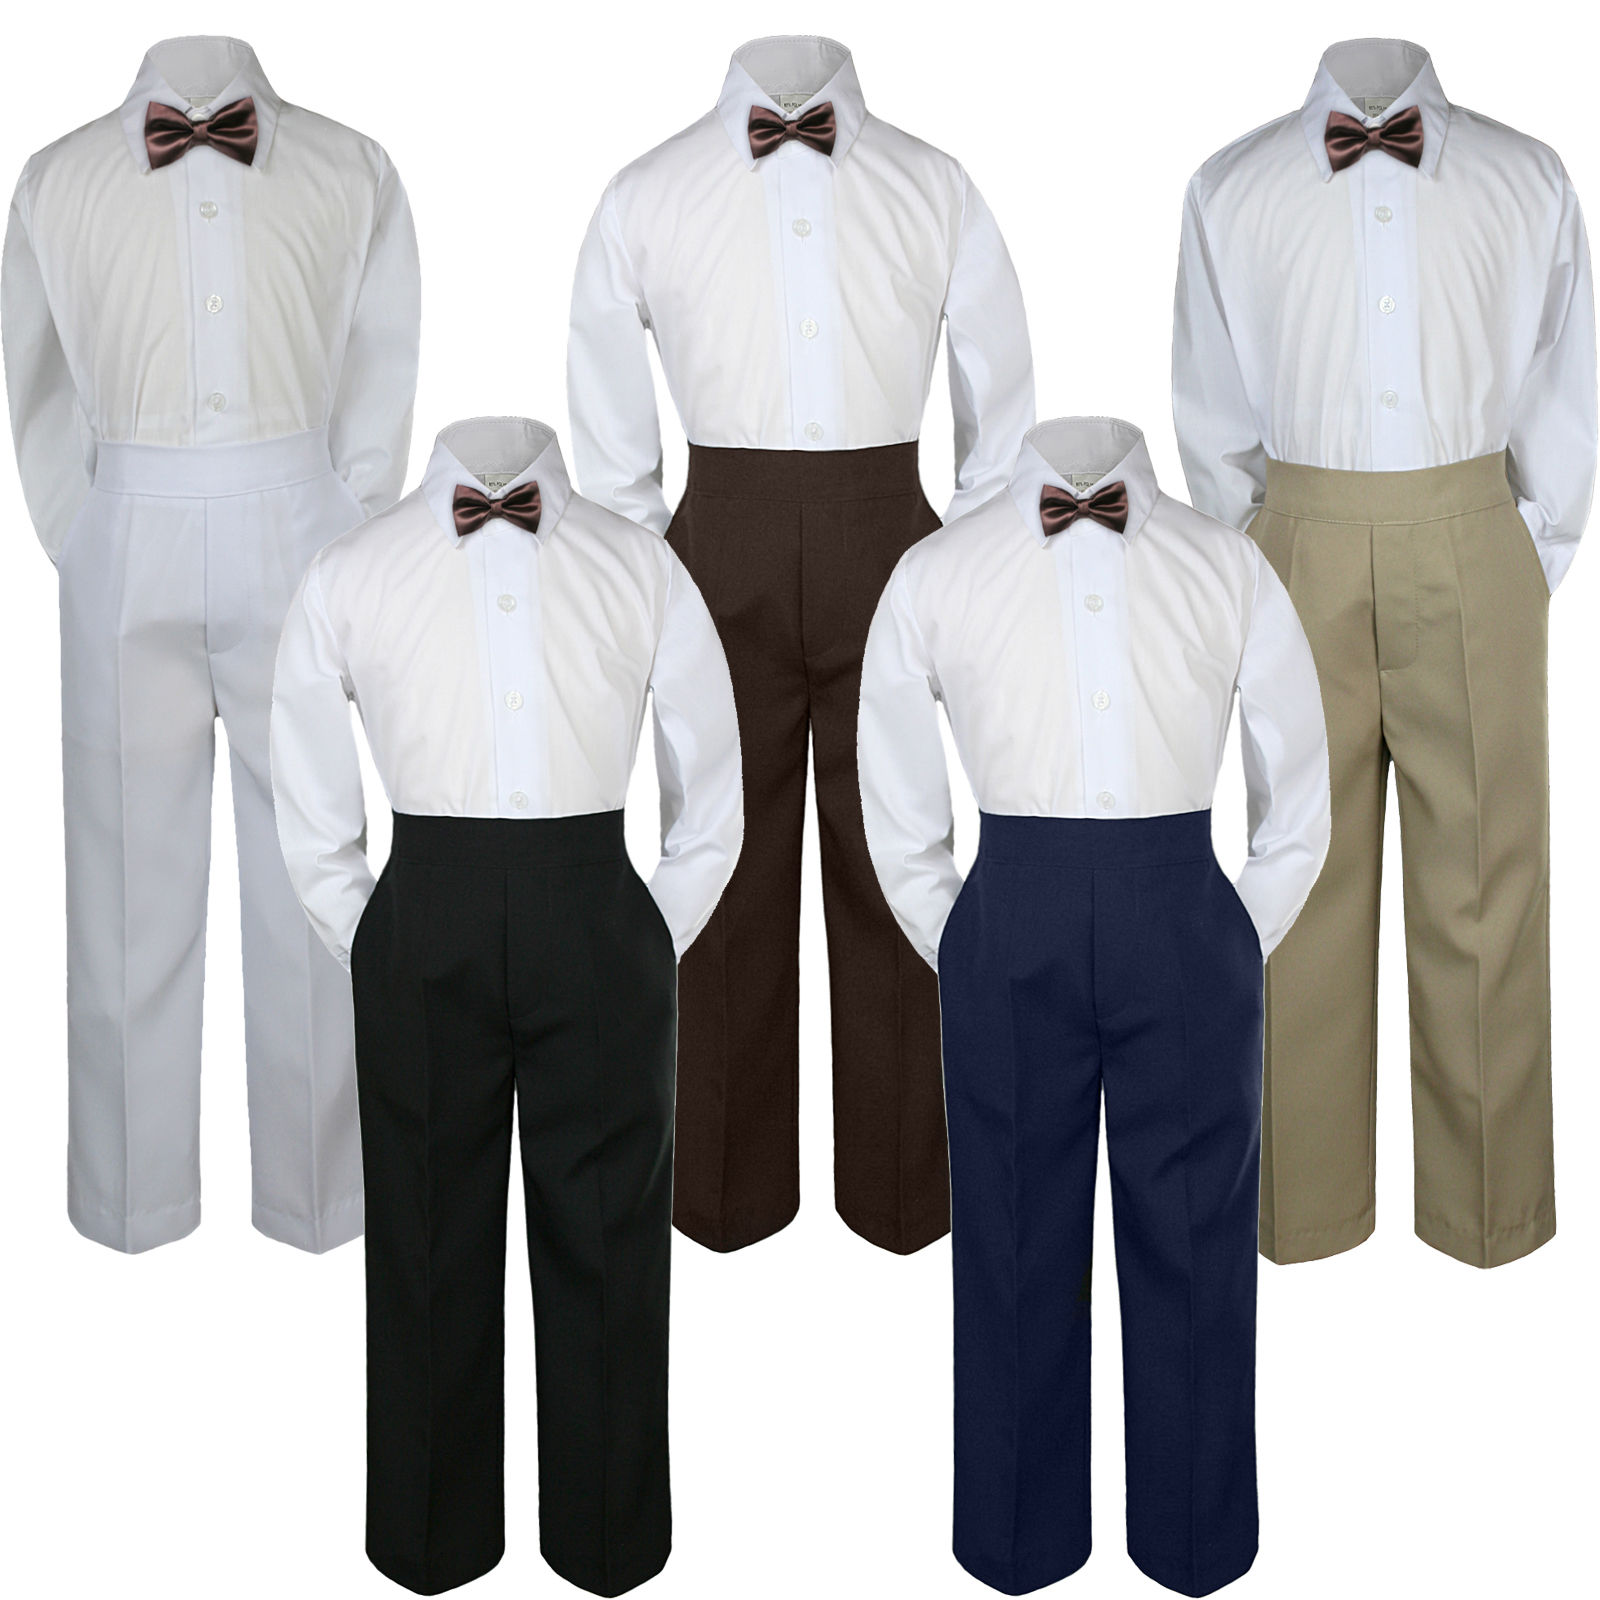 3pc Boys Baby Toddler Kids Chocolate Brown Bow Tie Formal Pants Set Suit S-7